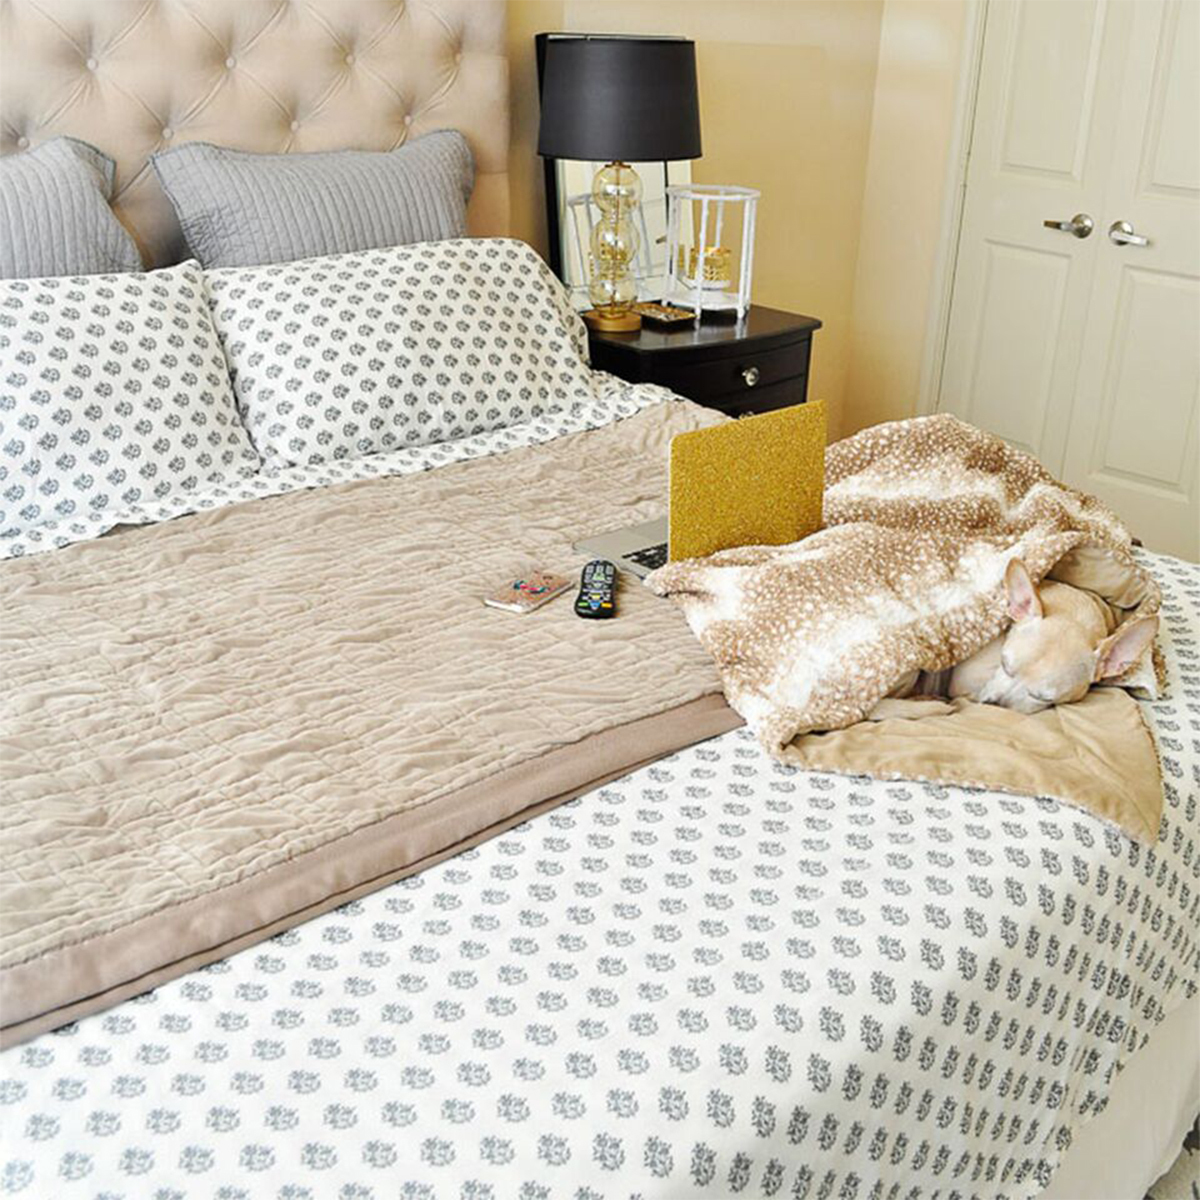 Bed with patterned comfortoer, gold blanket, and matching pillows photo